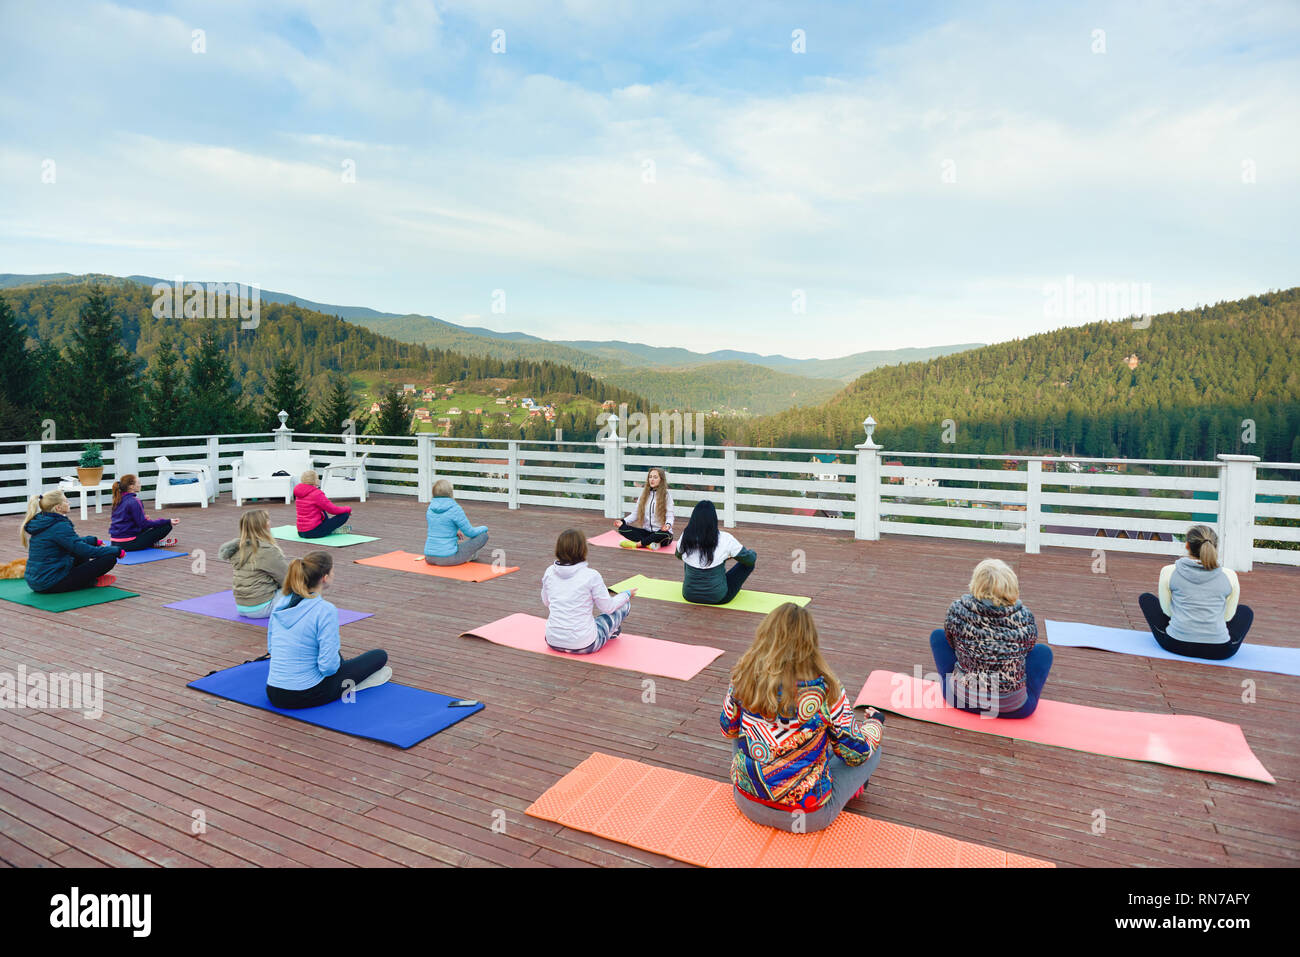 Woman practicing yoga with coach, sitting in lotus pose on yoga mats. Instructor teaching yoga in mountains on fresh air. Yoga group relaxing and enjoying amazing view. - Stock Image